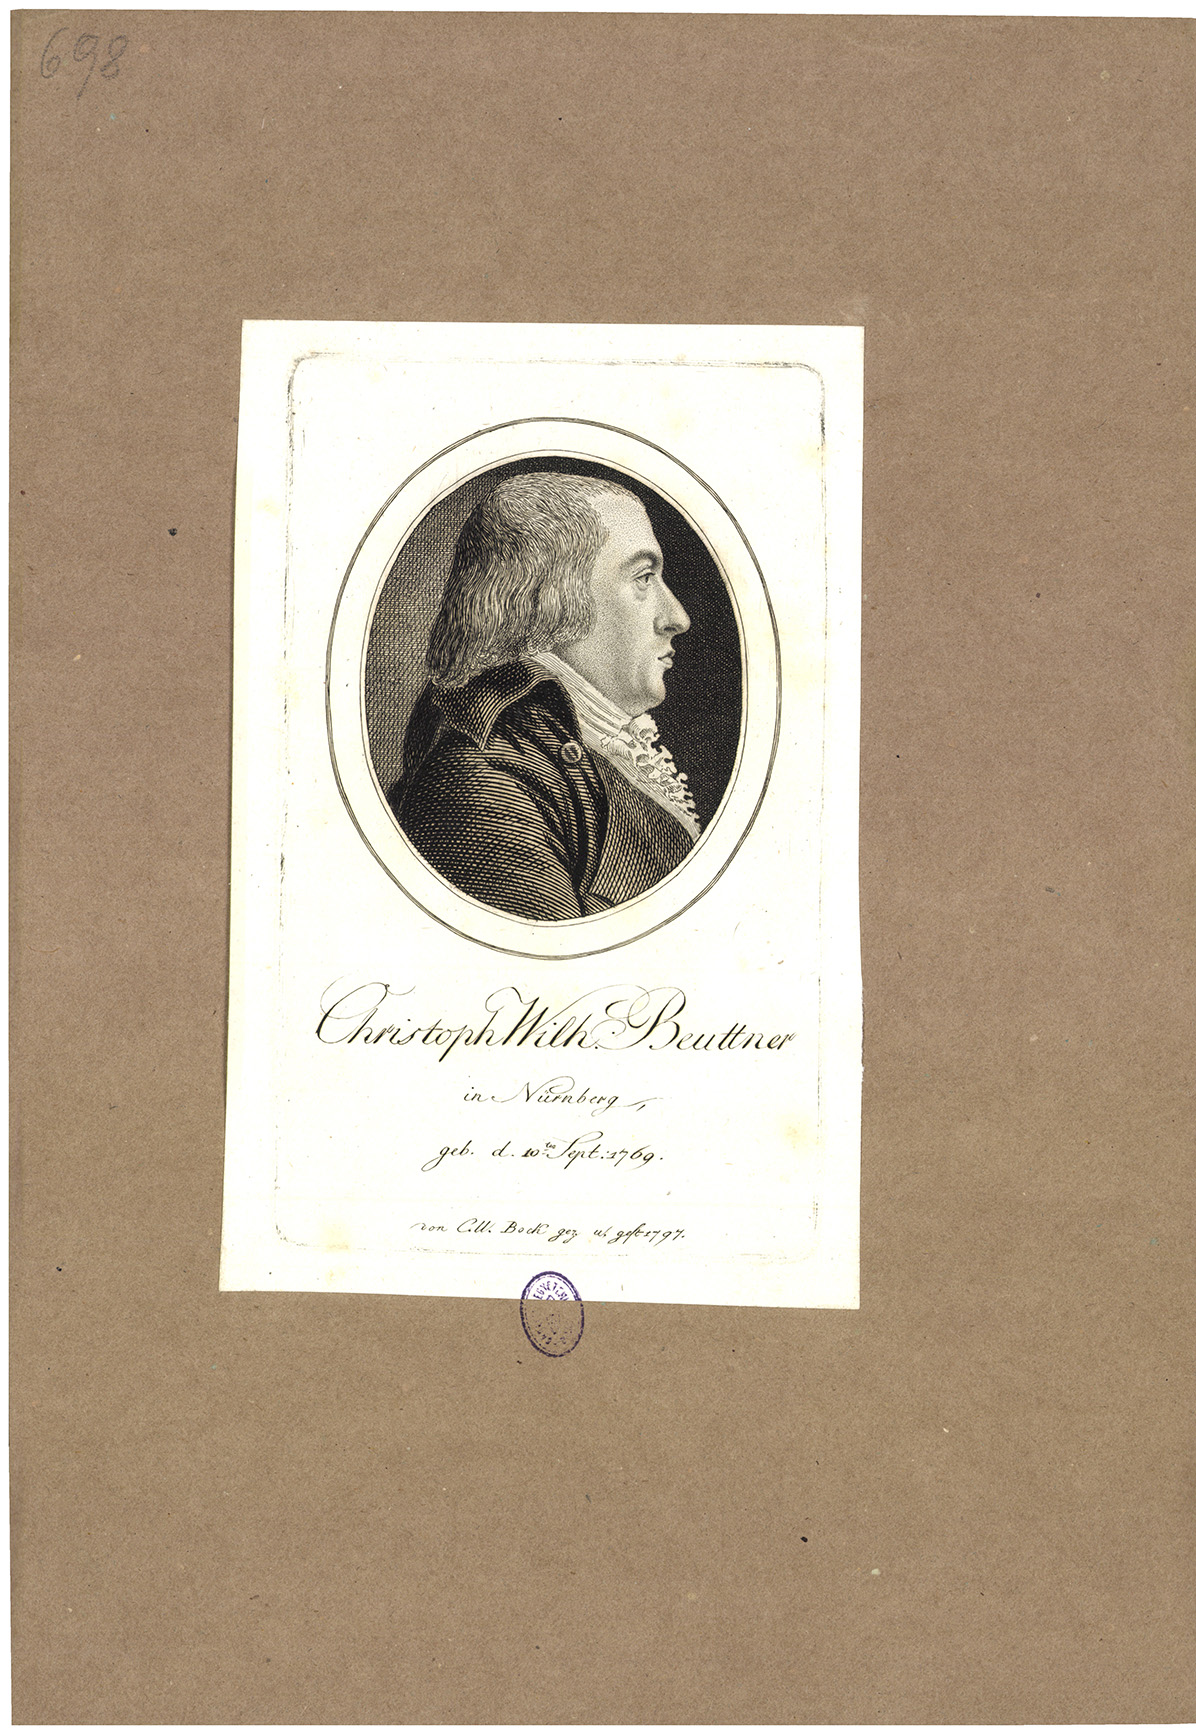 Christoph Wilh. Beuttner in Nürnberg geb. d. 10ten Sept. 1769.